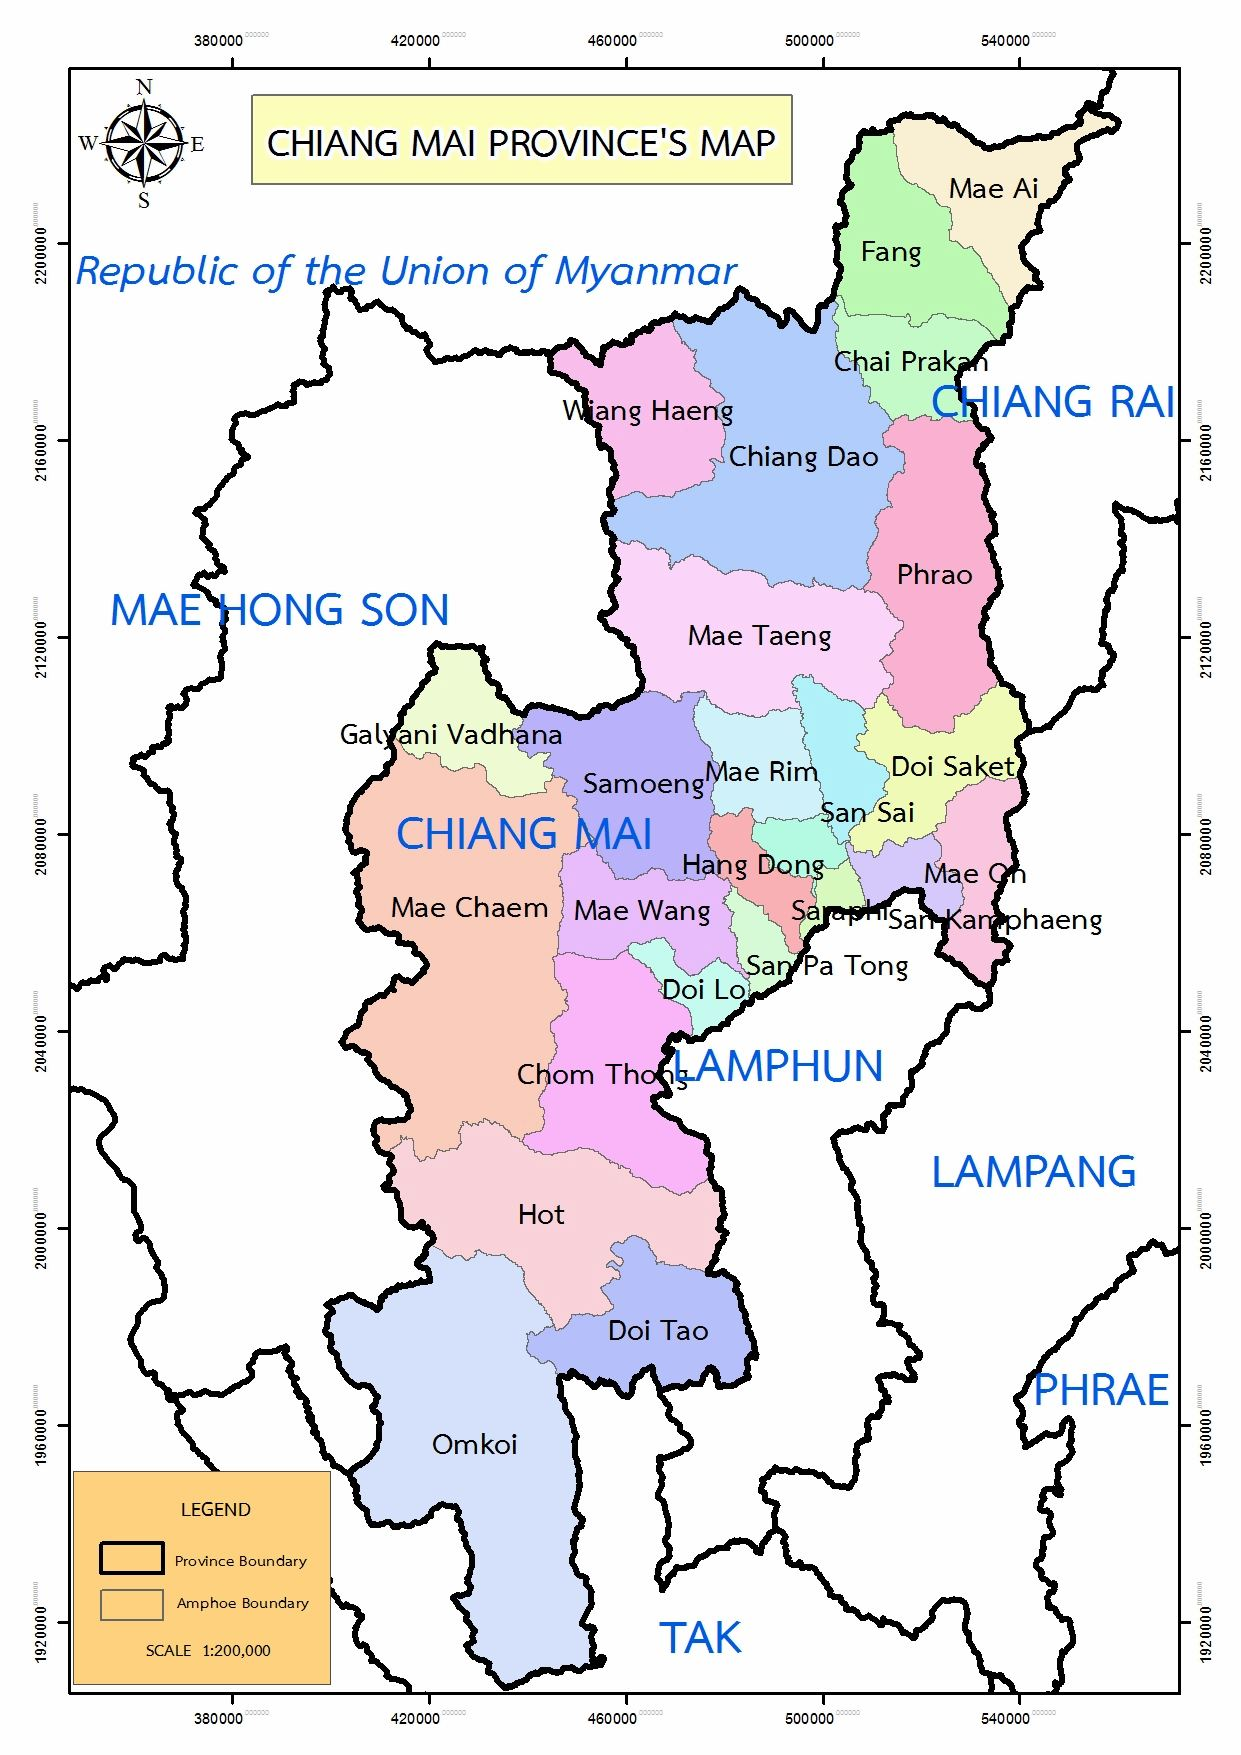 Large Chiang Mai Region Maps for Free Download and Print High